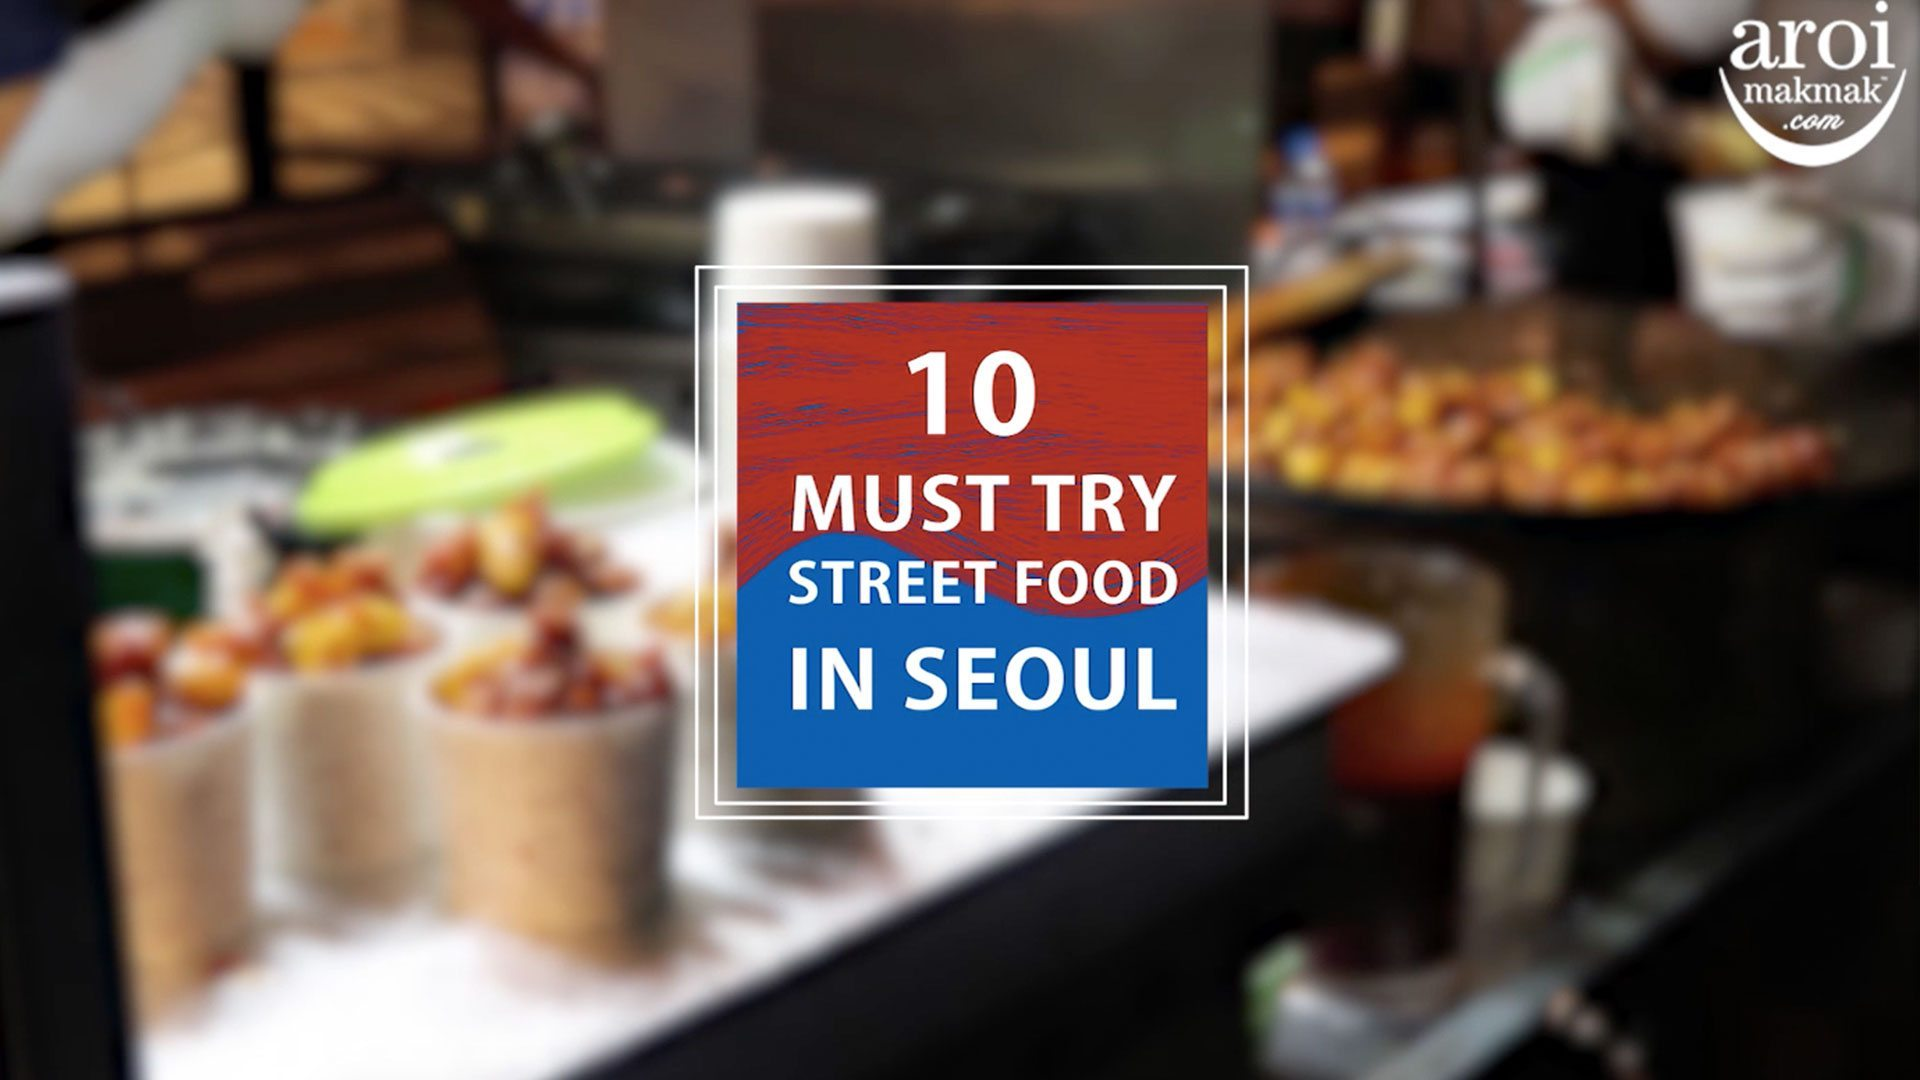 10MyeongdongStreetFood